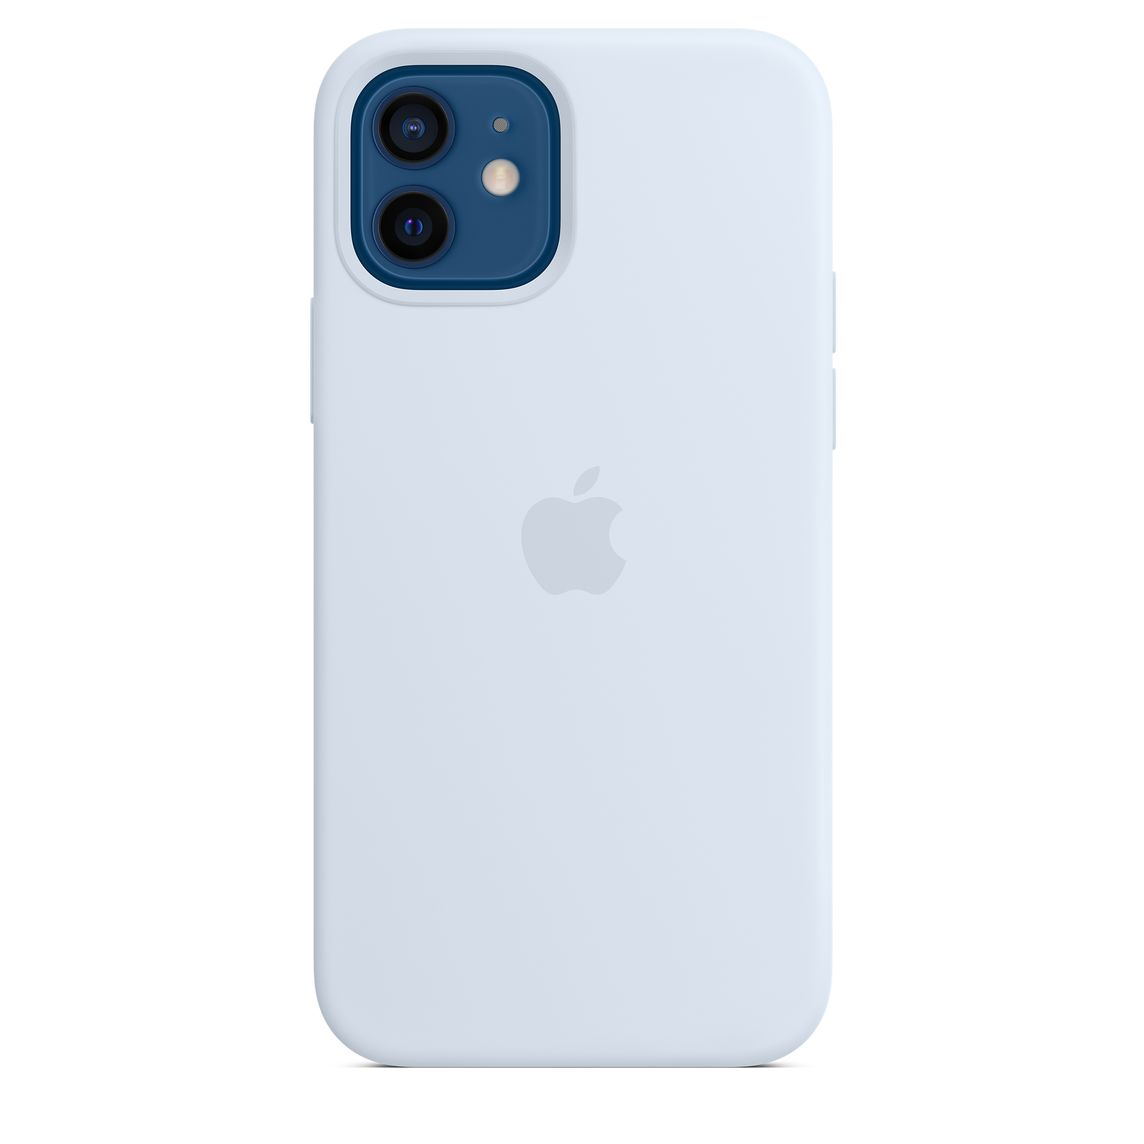 Coque protection apple iphone12 magsafe